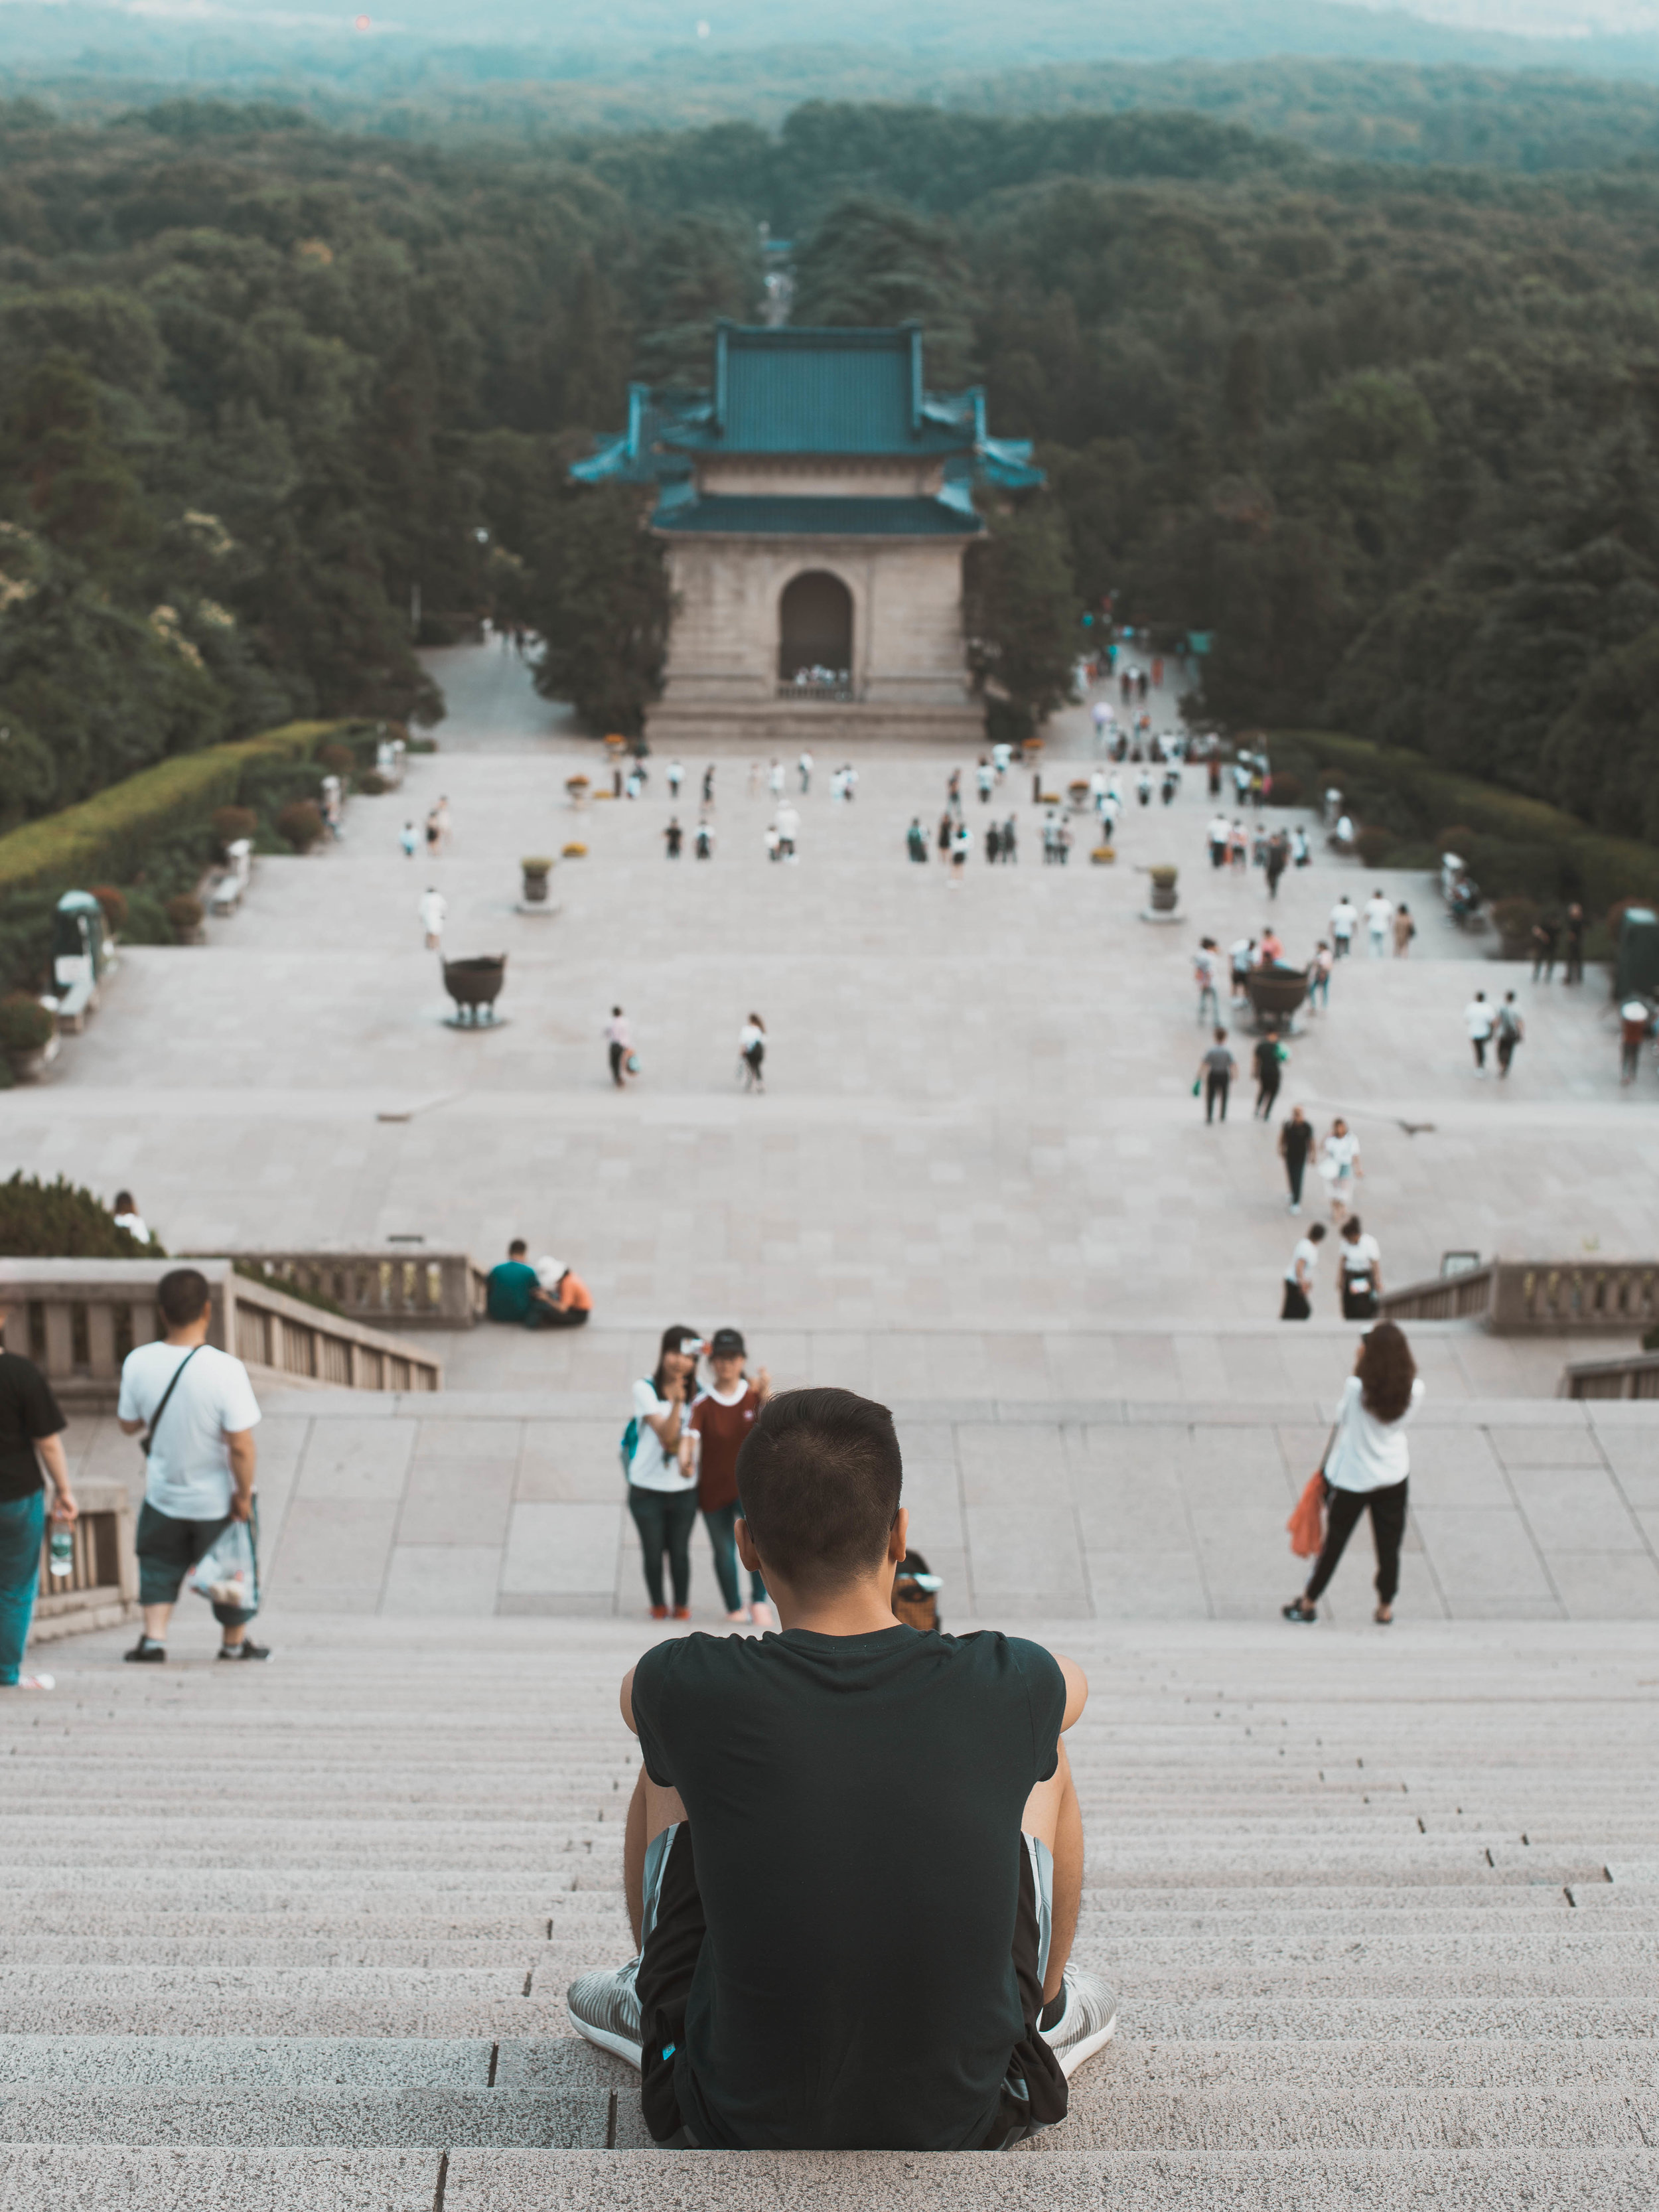 The view from the top of Dr. Sun Yat-sen's Mausoleum in Nanjing